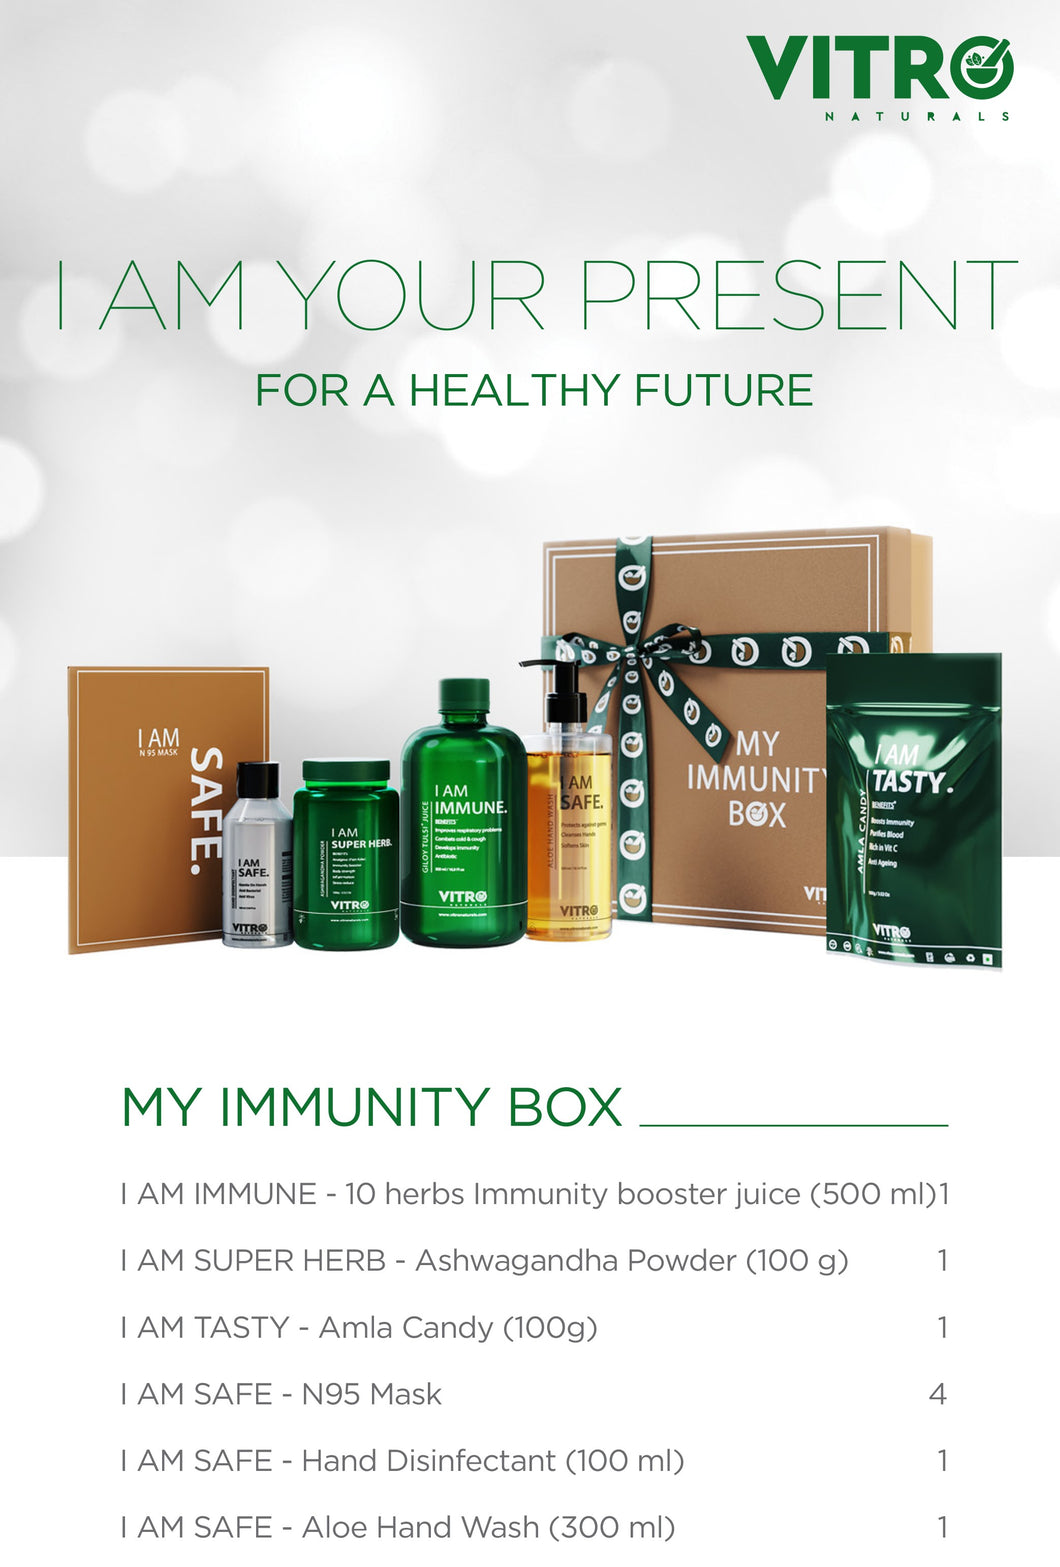 MY IMMUNITY BOX - I AM YOUR PRESENT